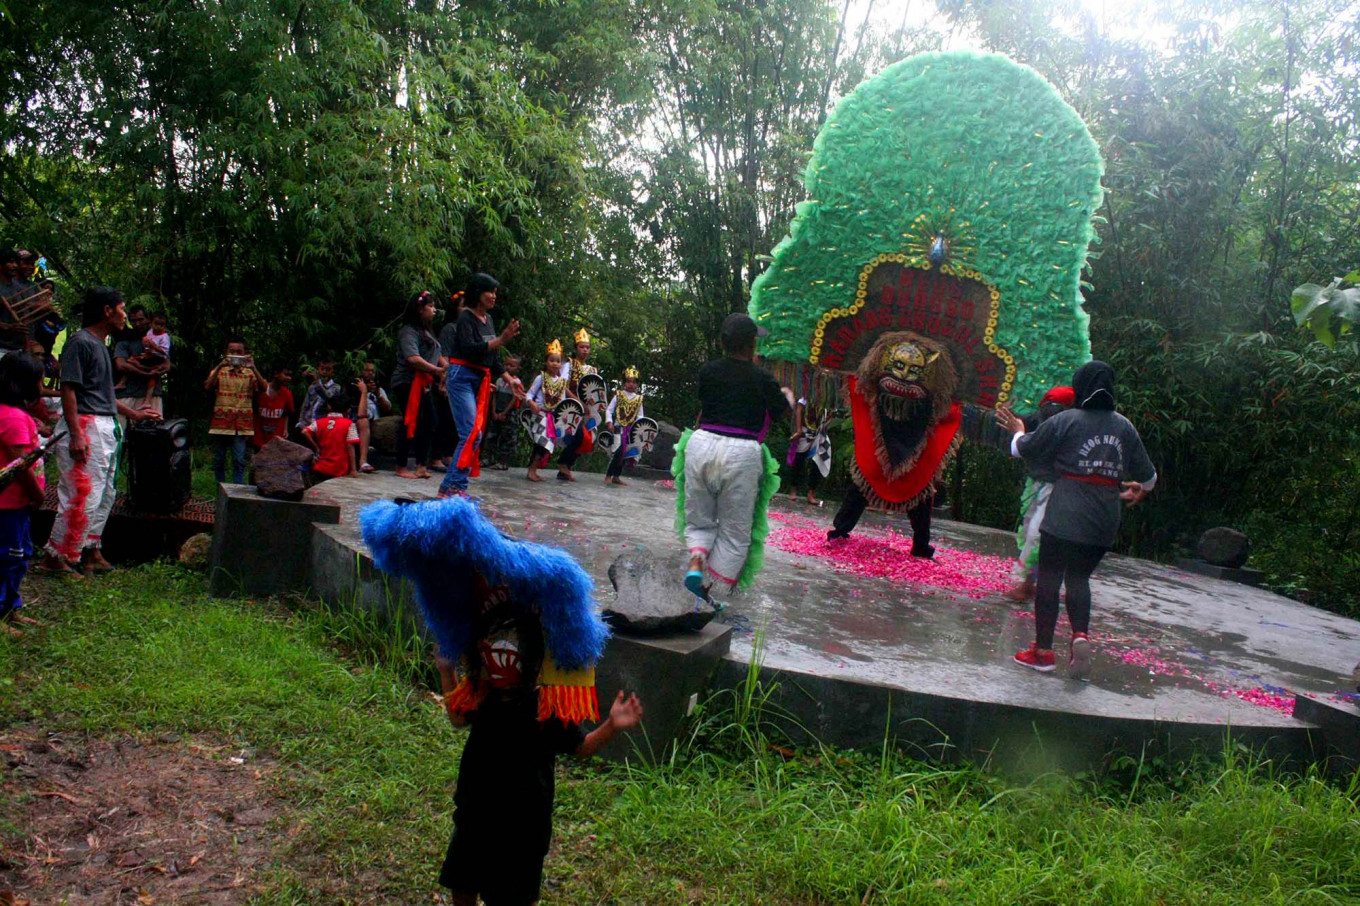 A Reog Ponorogo dance troupe performs during the festival. JP/Maksum Nur Fauzan